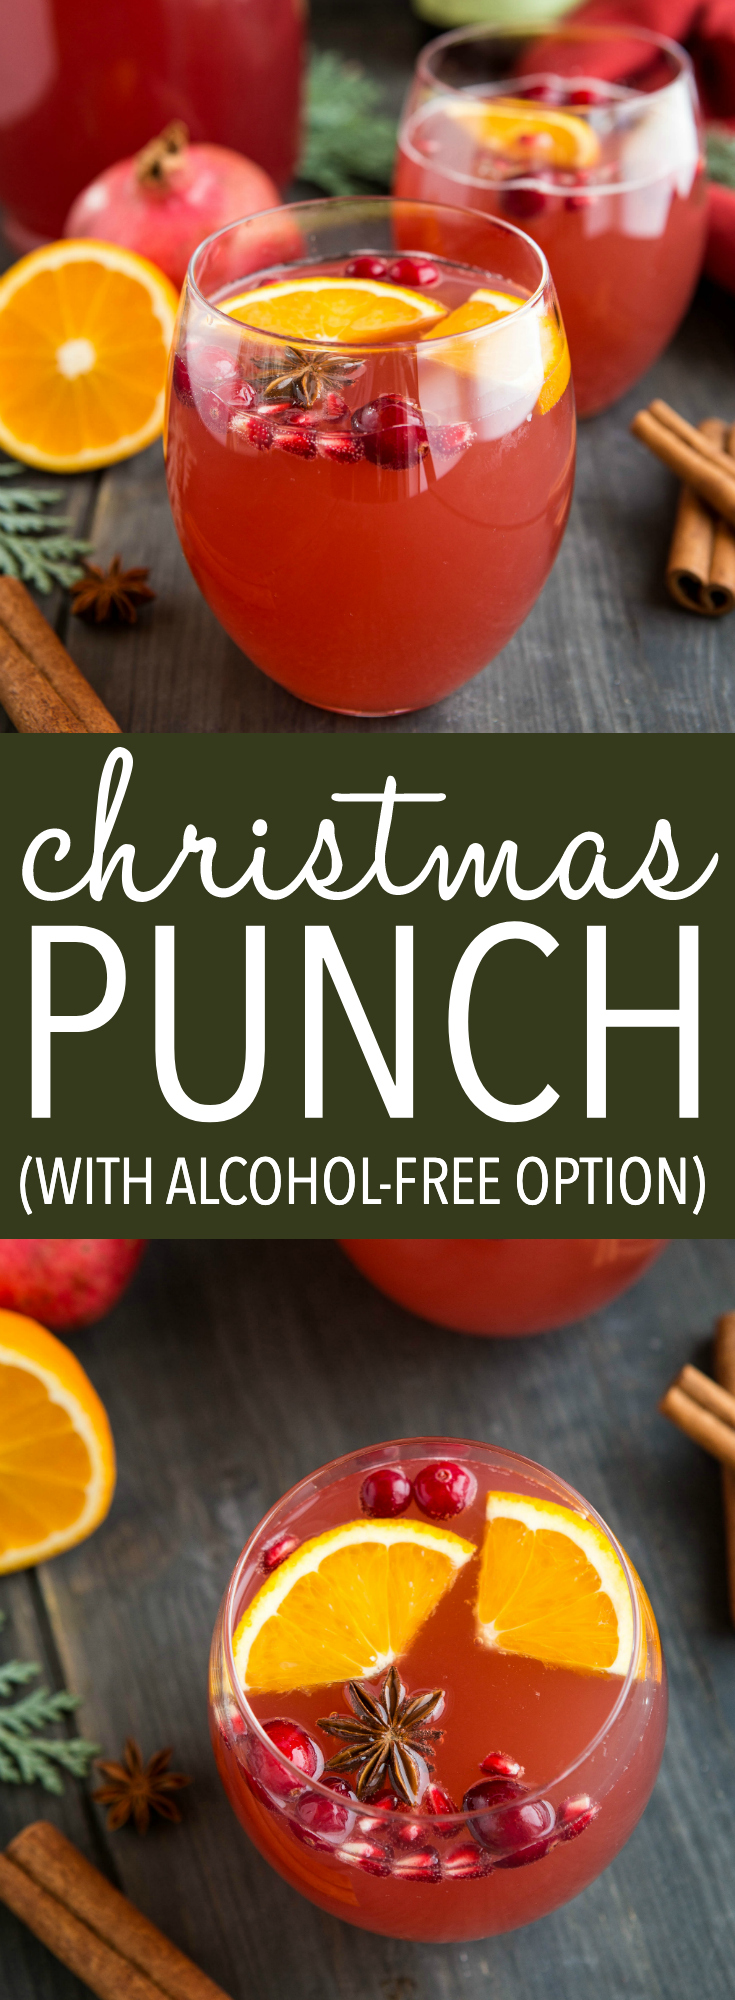 Christmas Punch is the perfect holiday party drink! Packed with fruit flavour and spice, make this recipe with wine, champagne, or alcohol-free. Recipe from thebusybaker.ca ! #christmas #holidaydrinks #thanksgiving #punchrecipe #alcohol #cocktails #alcoholfree #mocktail #kidfriendly #holidaypartyideas via @busybakerblog